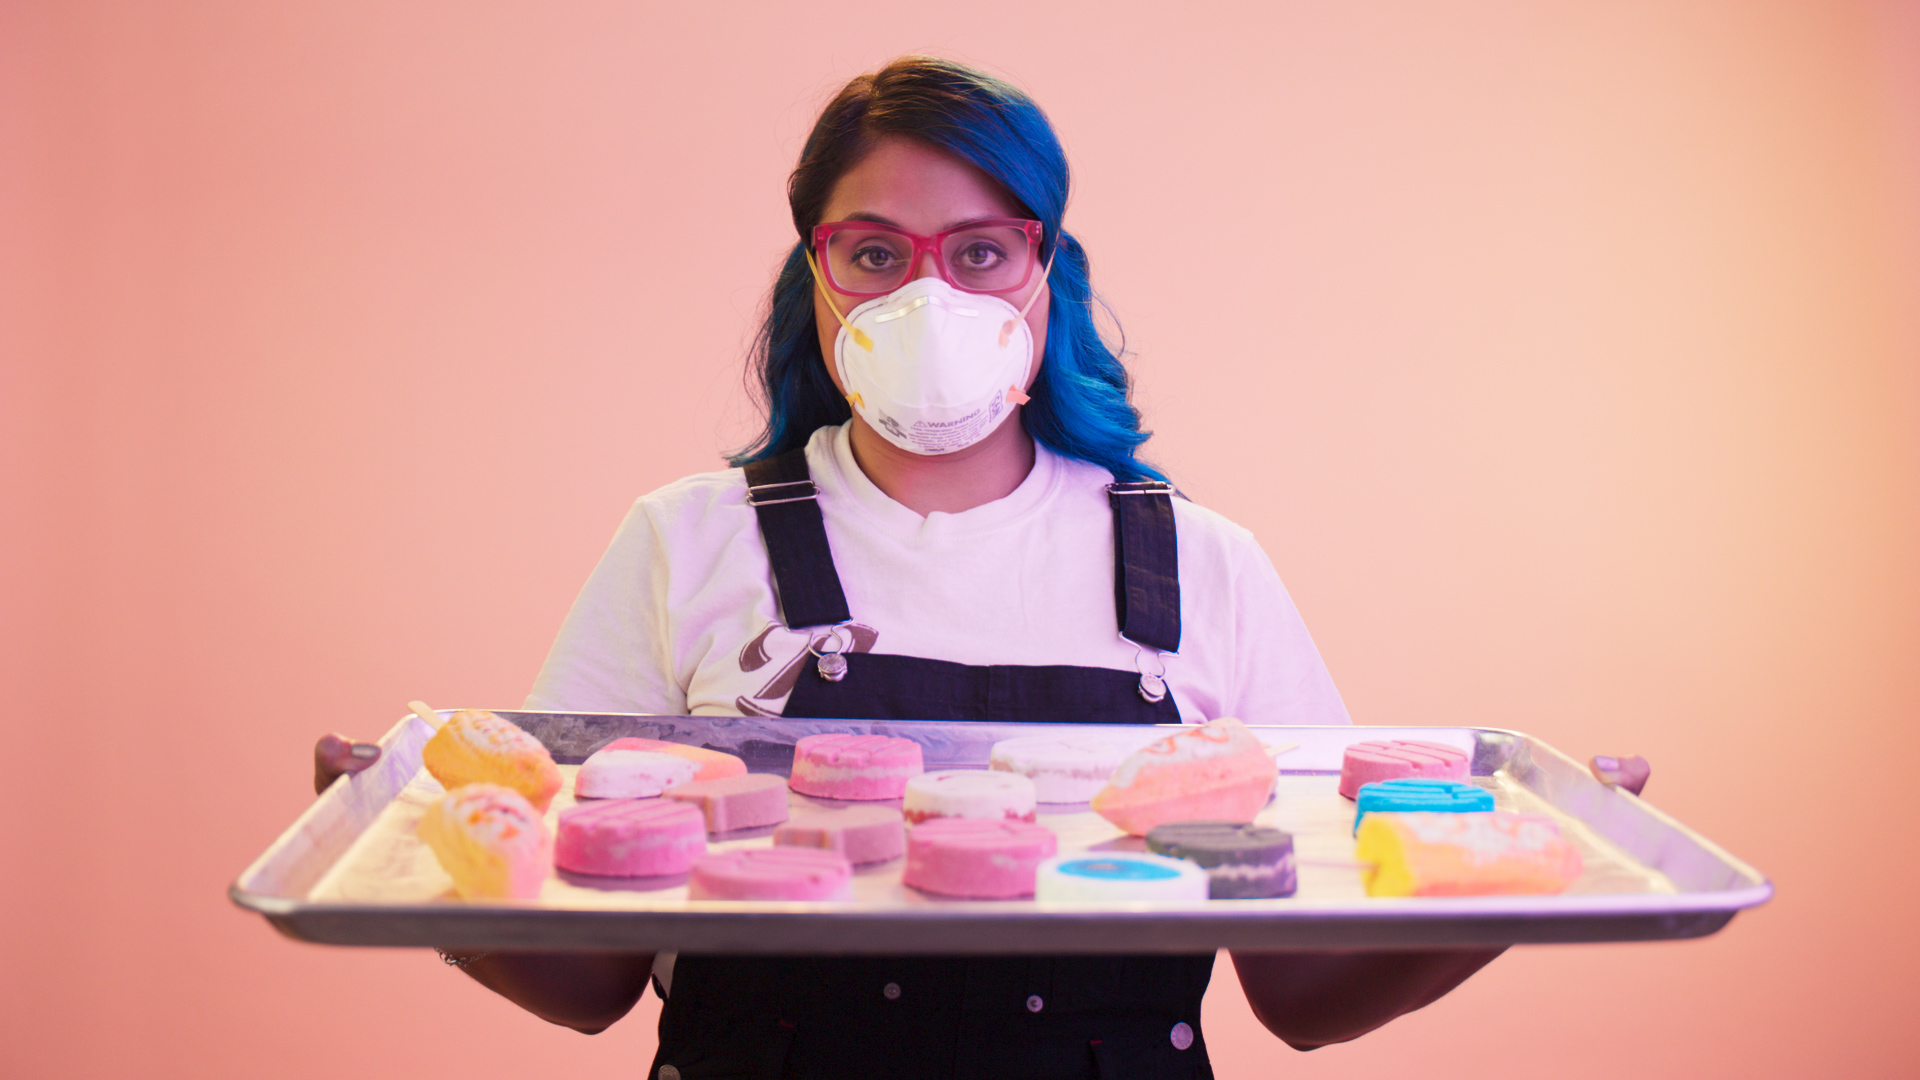 Meet Yamira Venegas, the Entrepreneur Behind the Internet's Favorite Concha Bath Bombs